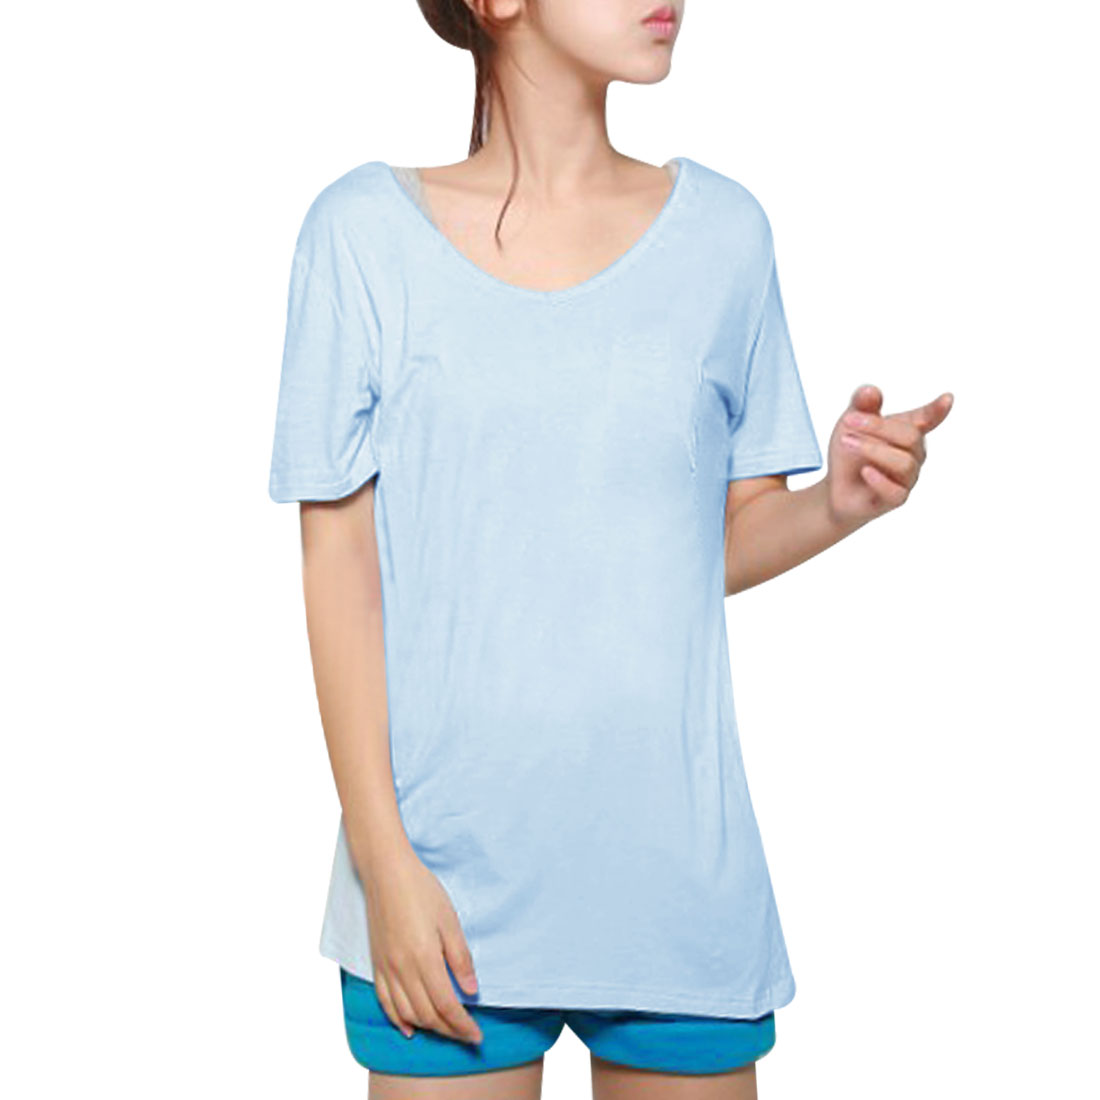 Ladies Summer Leisure V Neck Short Sleeve T-Shirt Pale Blue XS